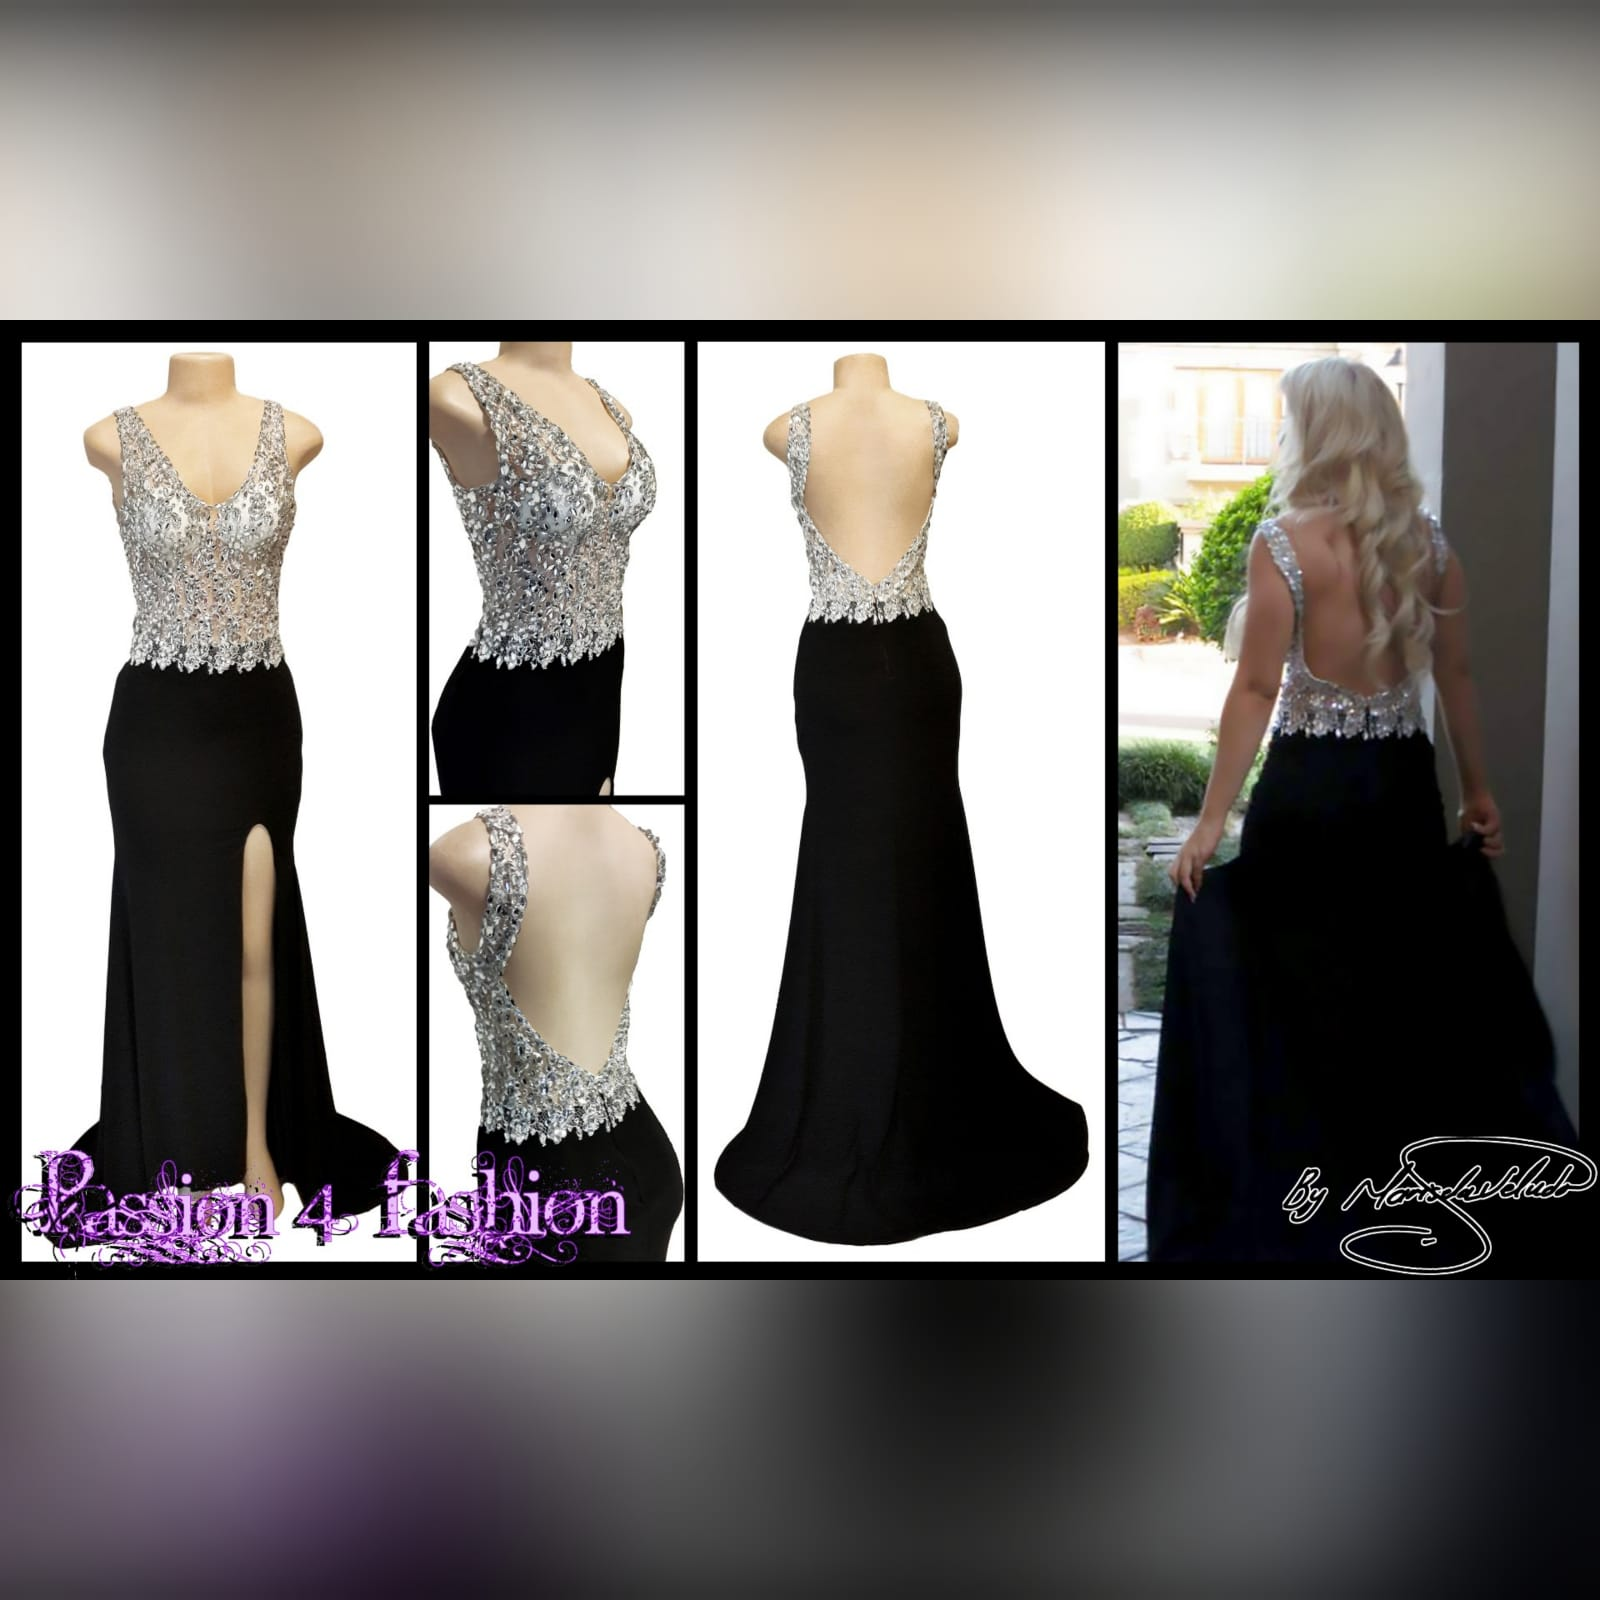 Black and silver prom dress with a slit and a train 4 black & silver prom dress with a slit and a train. Bodice with a sweetheart neckline and a low open back. With detailed silver beadwork through out the bodice